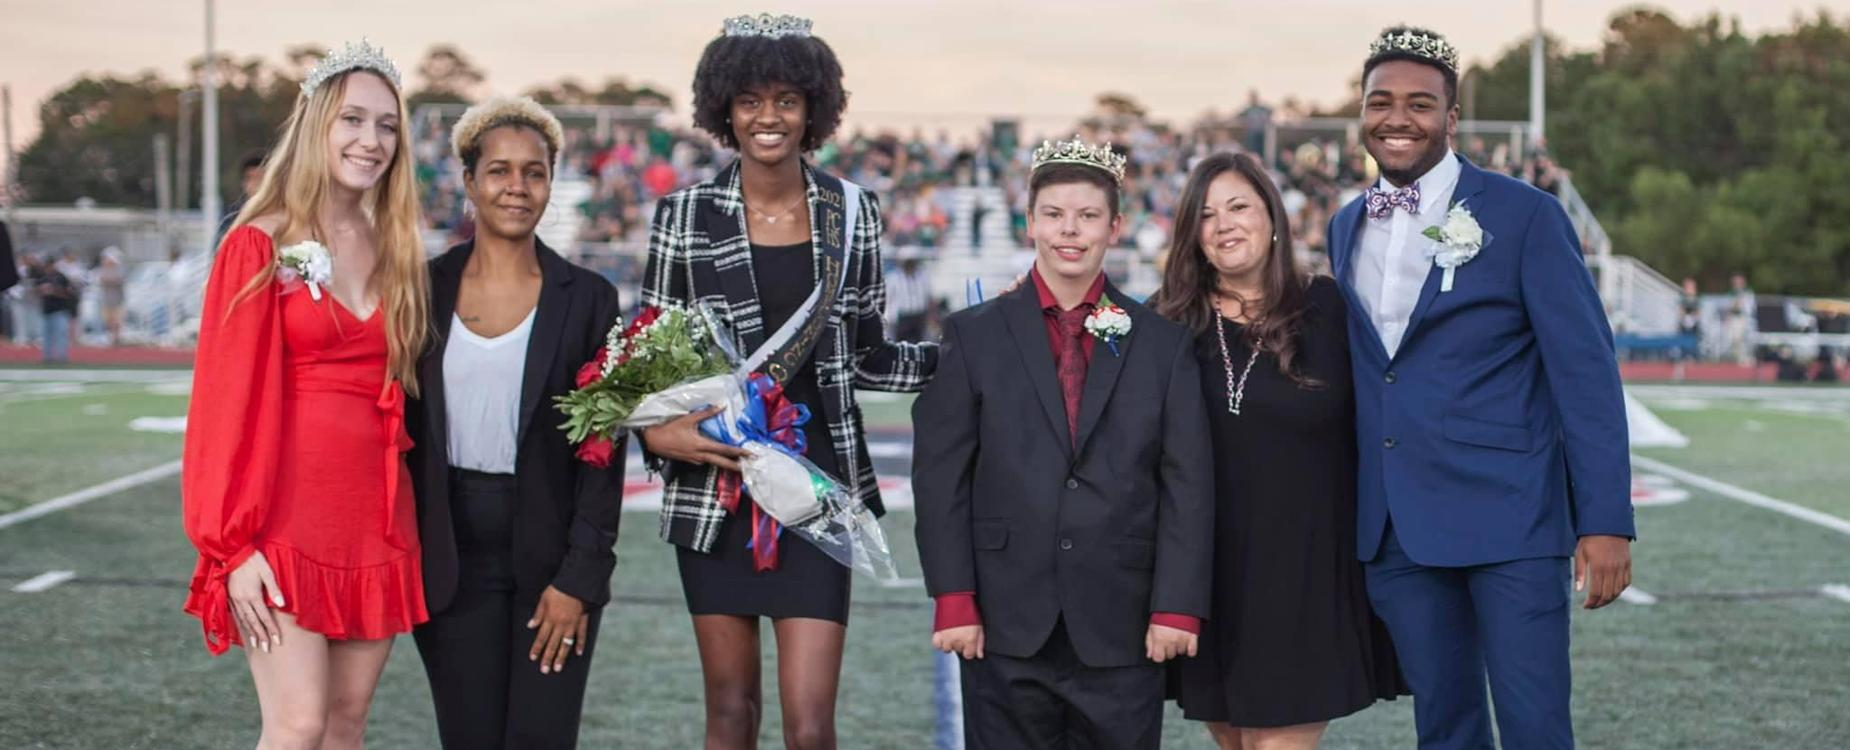 2021 PCHS Homecoming